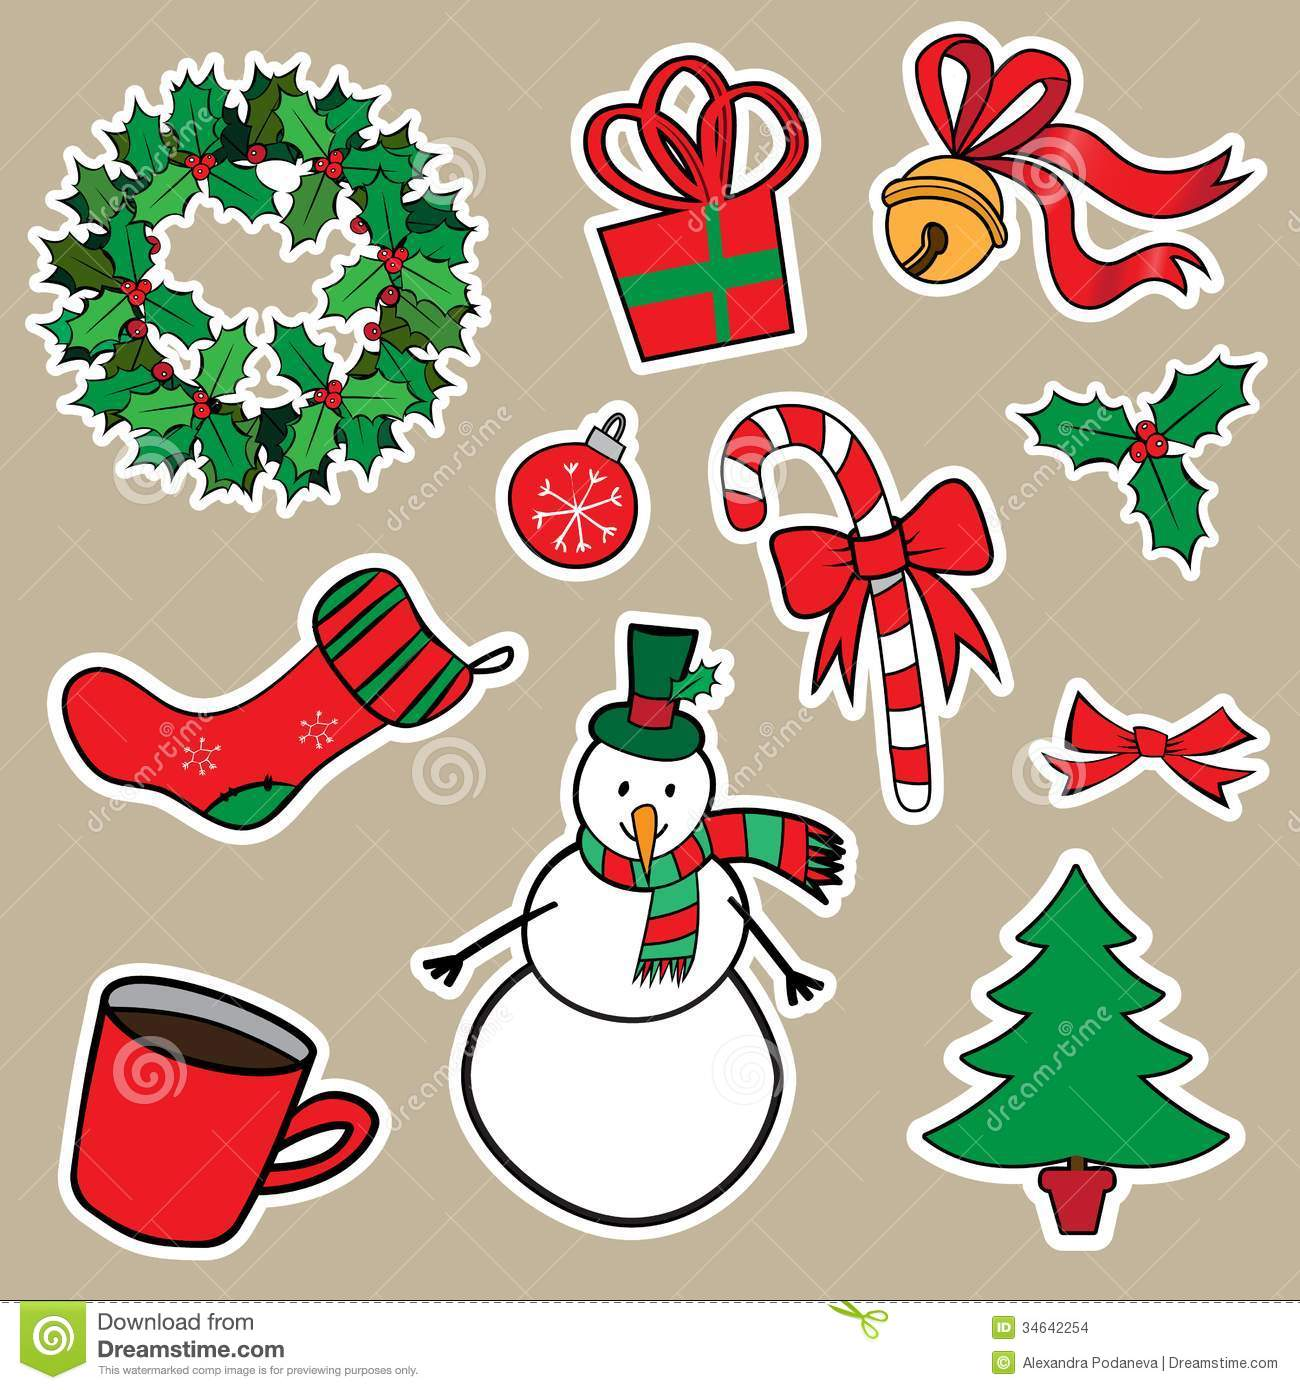 New Year And Christmas Sticker Icons Stock Images - Image: 34642254